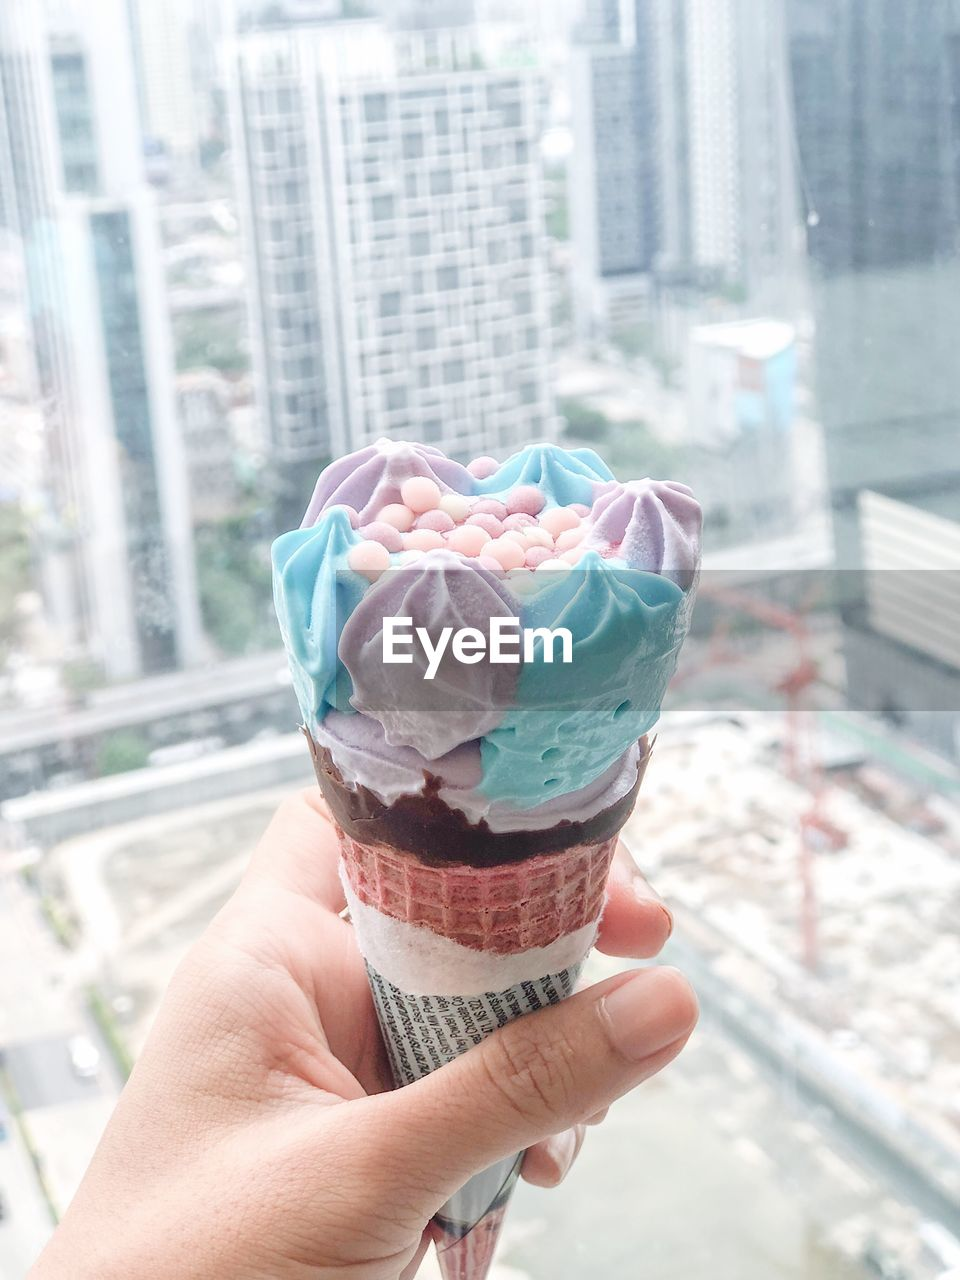 human hand, sweet food, sweet, human body part, food and drink, ice cream, indulgence, food, frozen food, dairy product, holding, hand, dessert, focus on foreground, real people, one person, frozen, temptation, personal perspective, cone, outdoors, finger, frozen sweet food